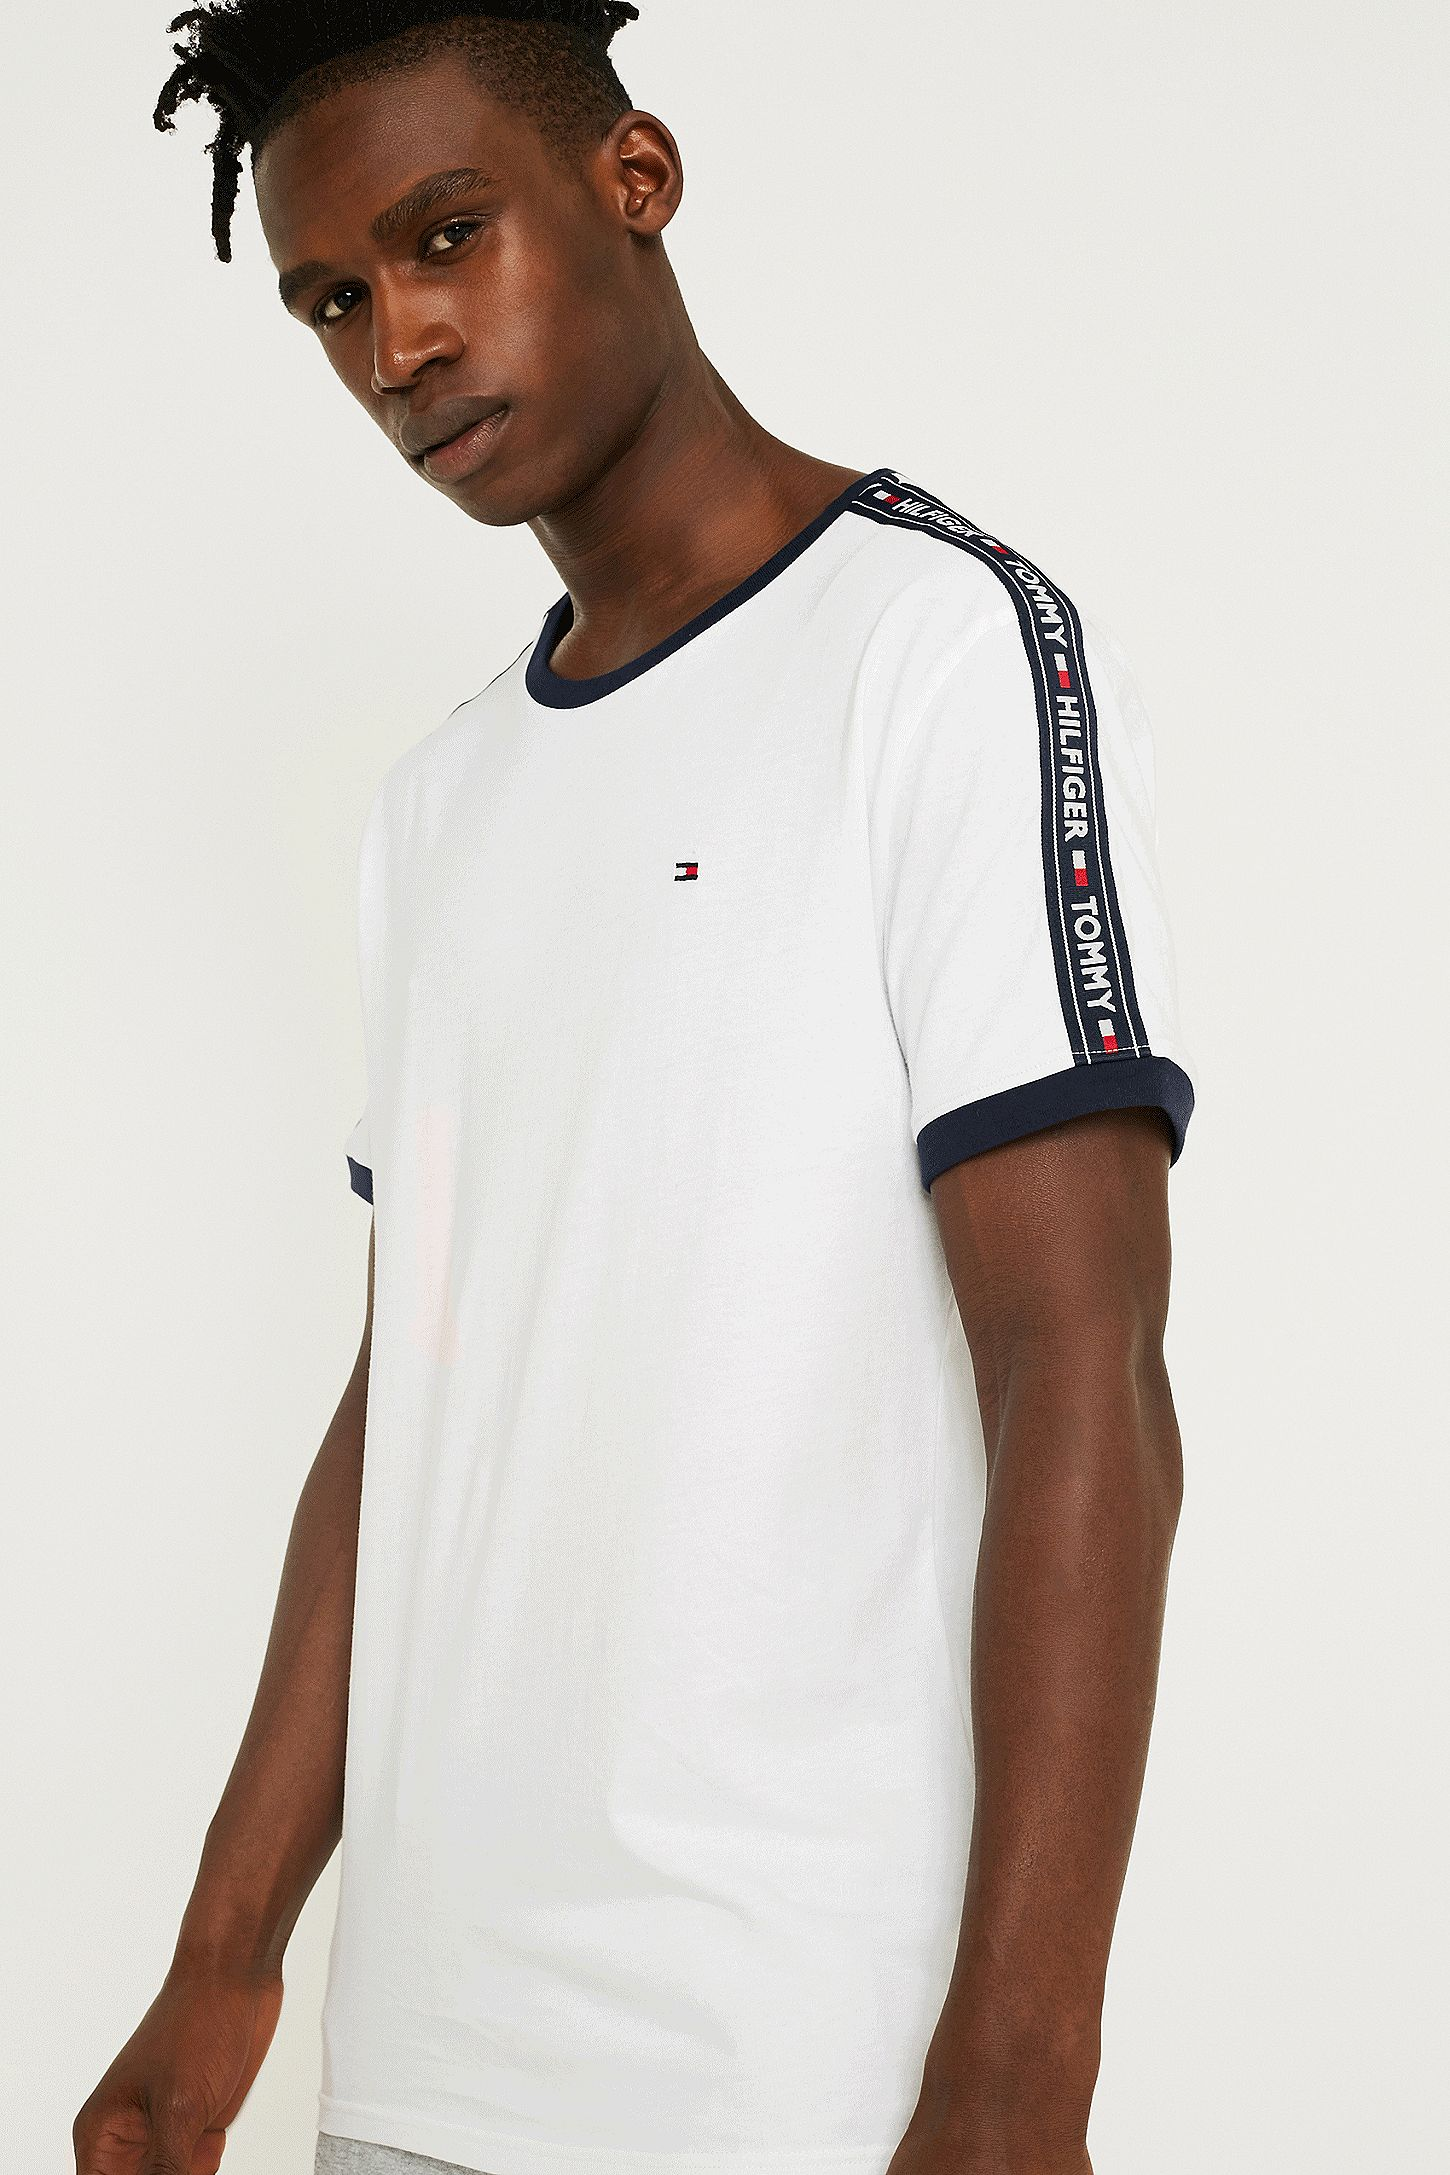 Tommy Hilfiger Taped Sleeve White T Shirt